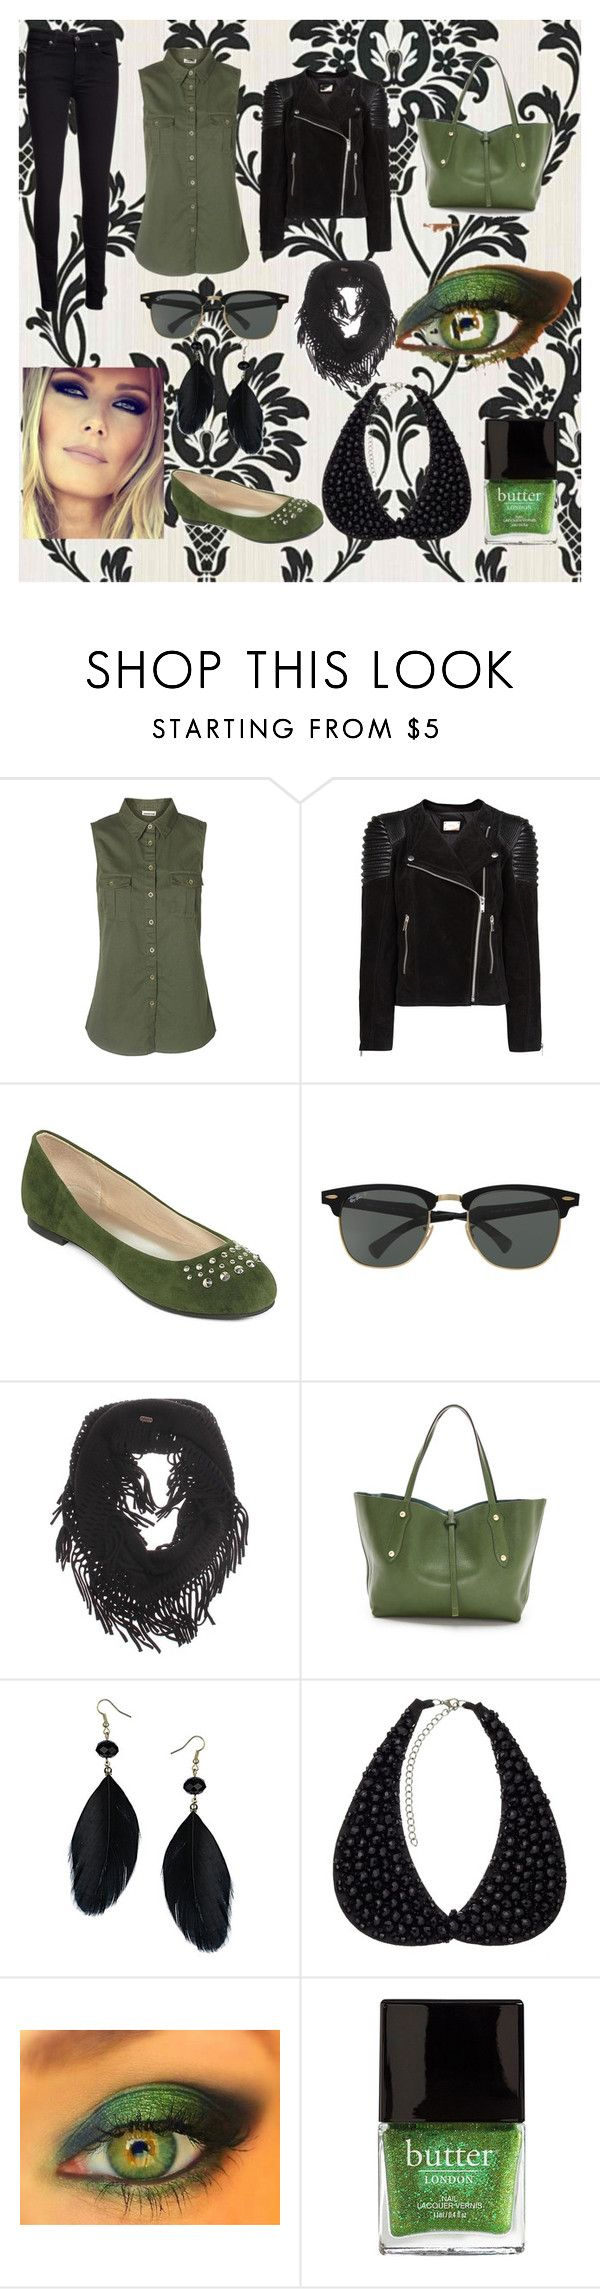 """""""kaki-lili"""" by elisa-30 ❤ liked on Polyvore featuring 7 For All Mankind, Vero Moda, MANGO, Totes, Ray-Ban, Vans, Annabel Ingall, Dorothy Perkins, Jigsaw and Butter London"""